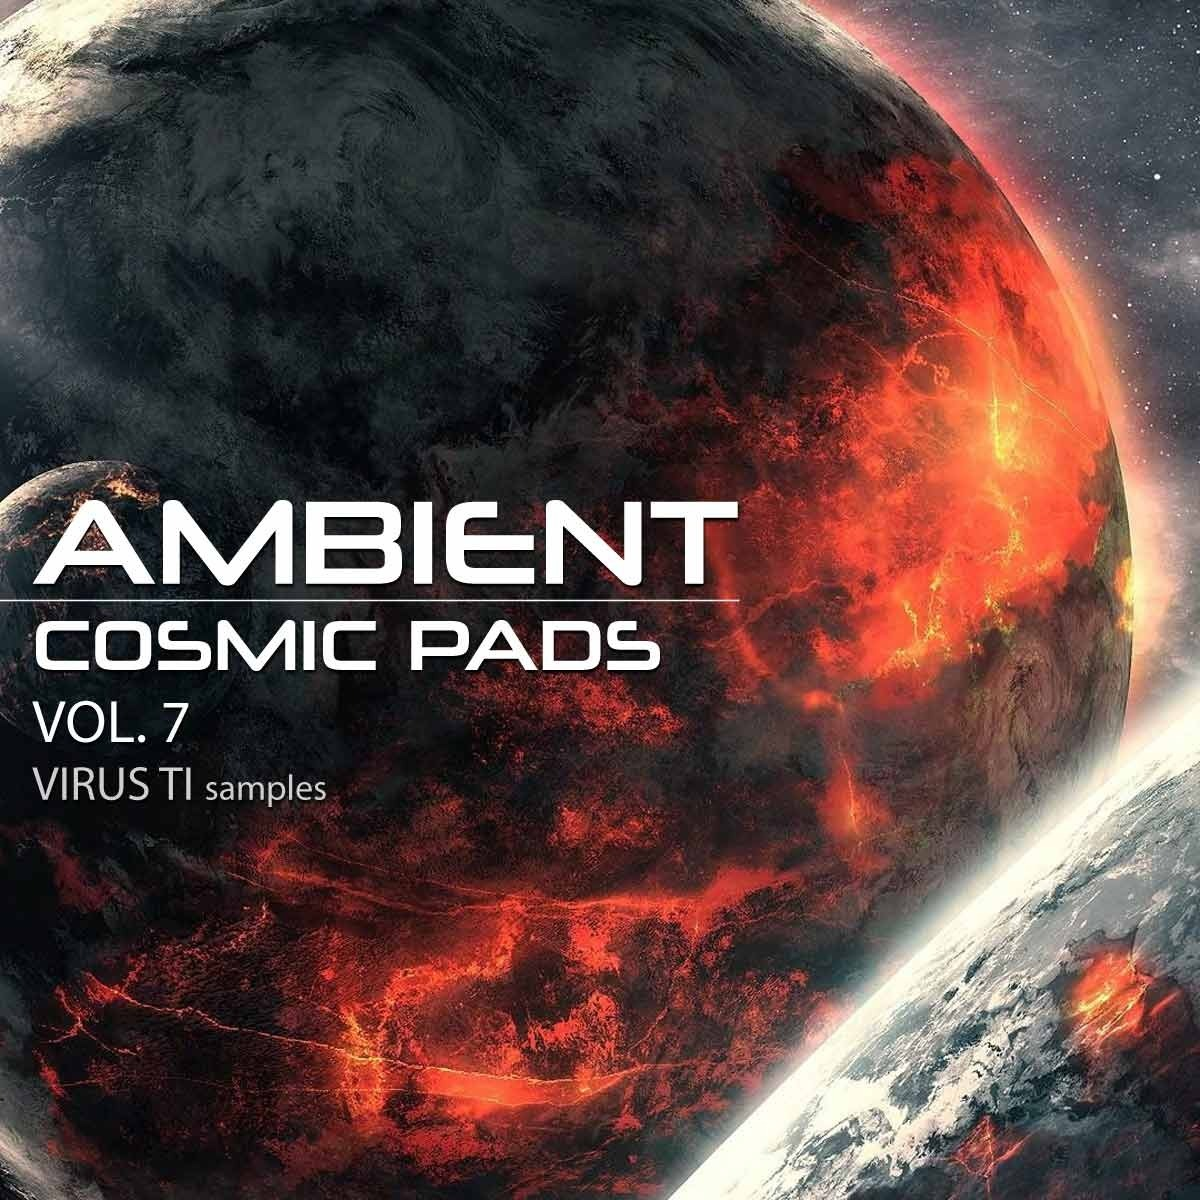 Ambient Cosmic Pads Vol 7